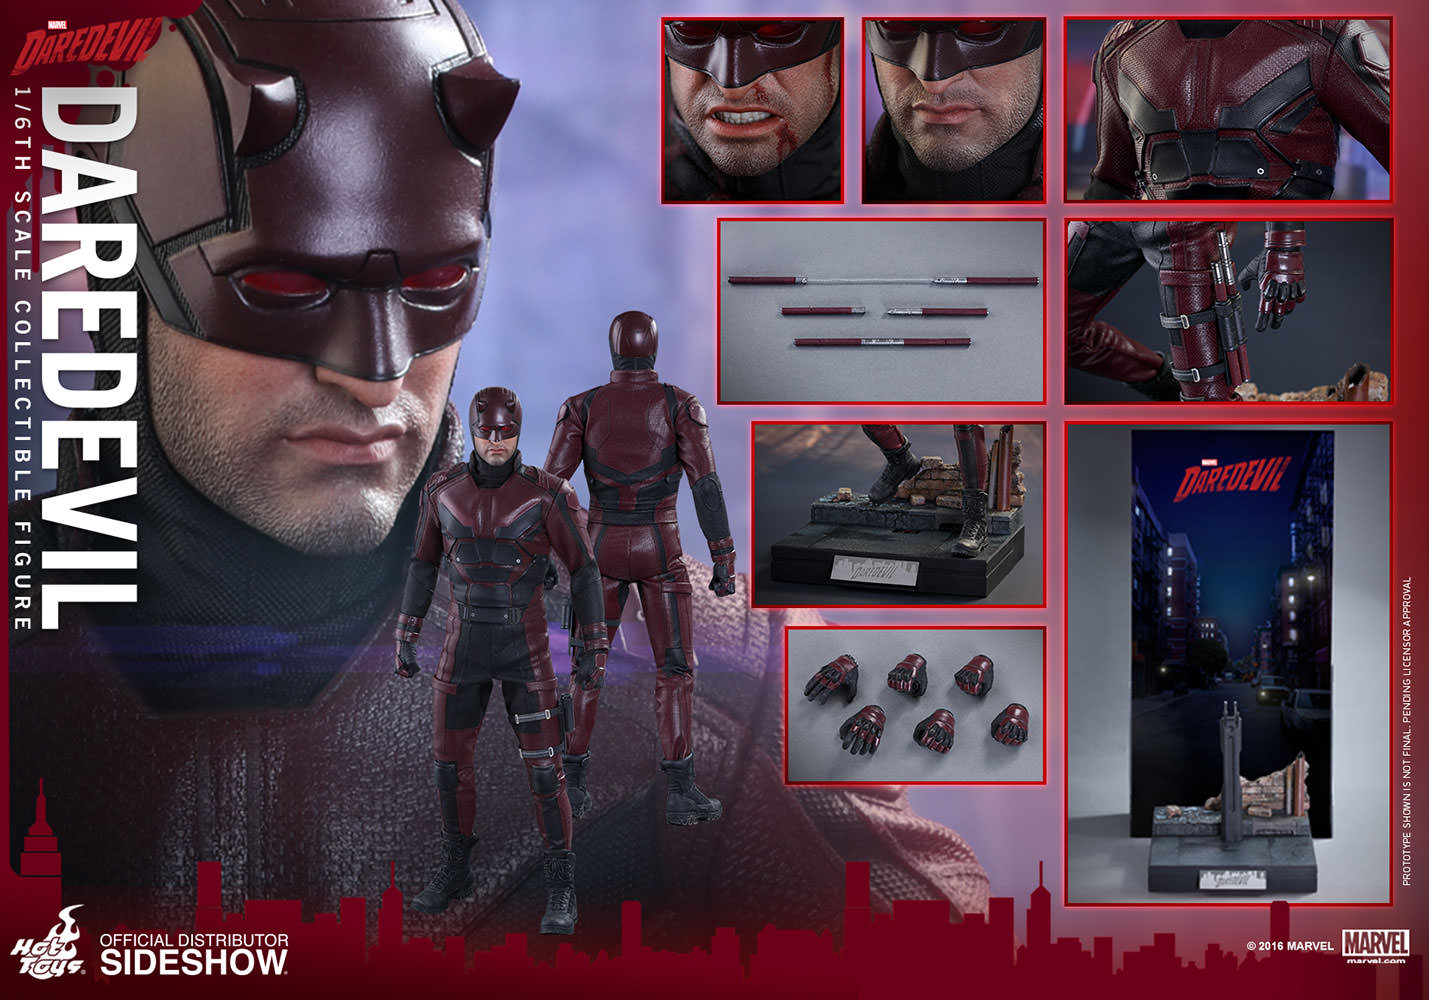 marvel-daredevil-sixth-scale-hot-toys-902811-21